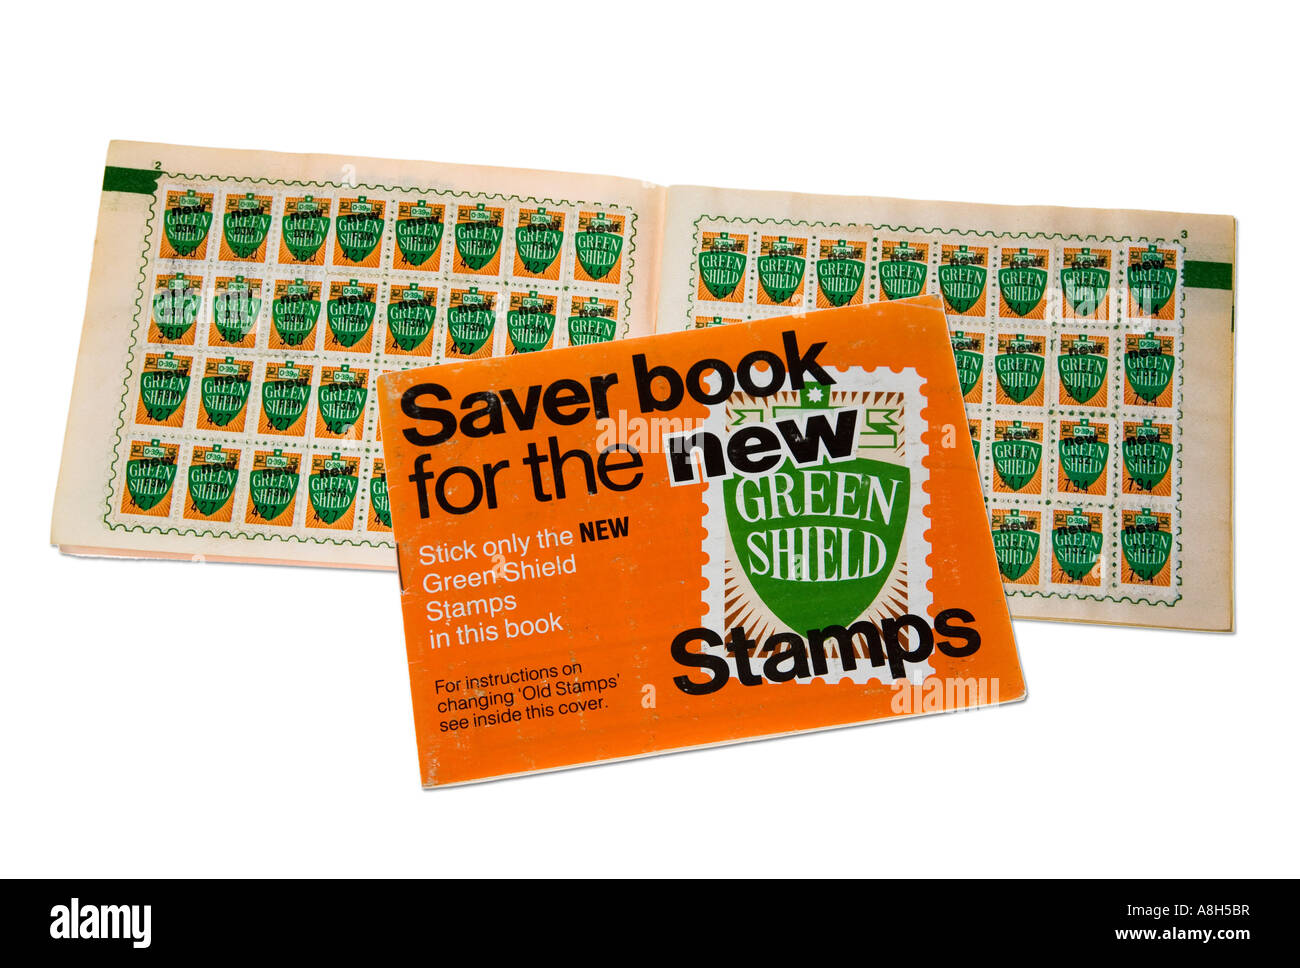 Green Shield stamps in book from 1970s used to collect points from purchases in petrol stations and shops UK - Stock Image